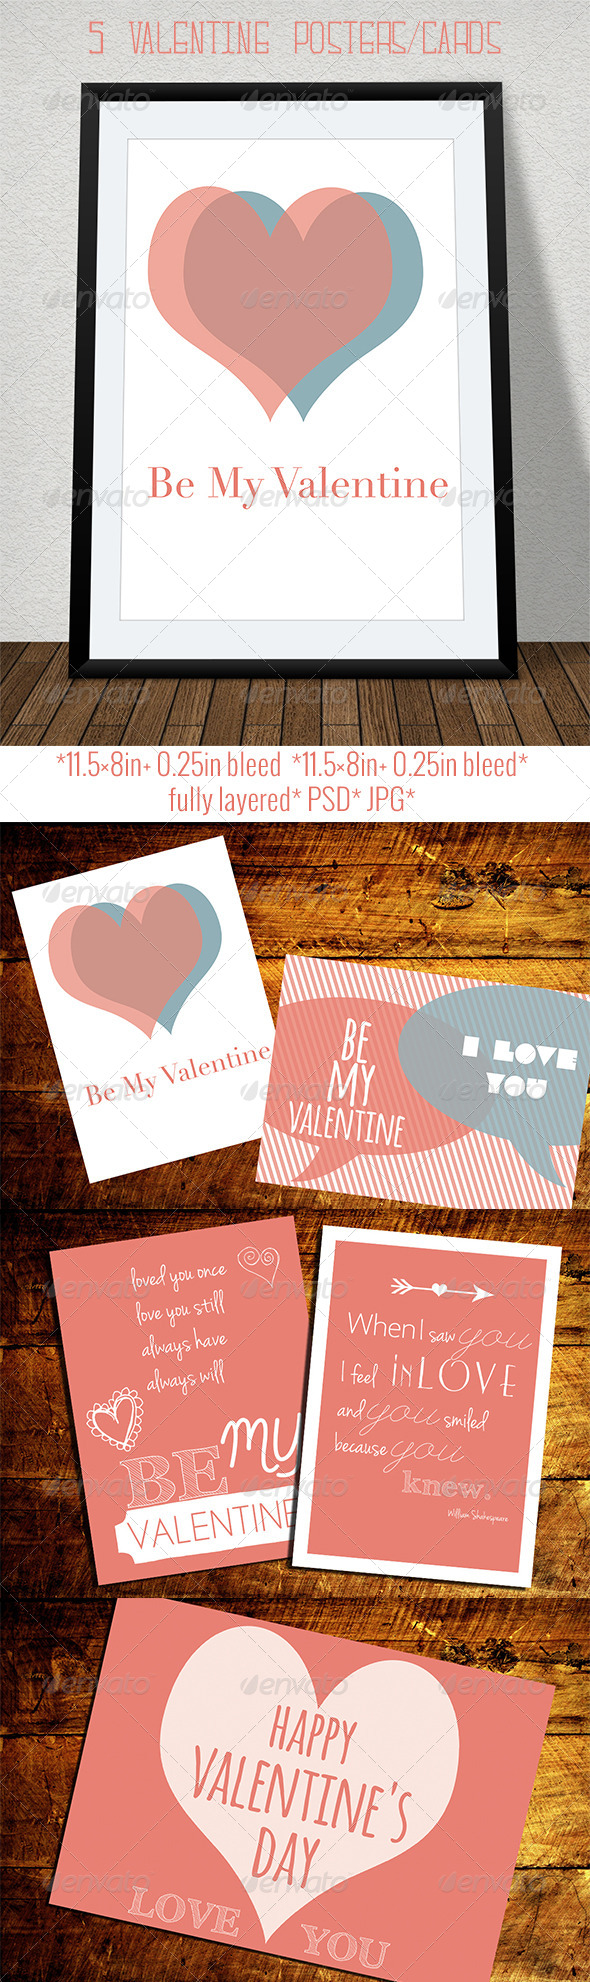 GraphicRiver Set of Retro Valentine s Day Cards and Posters 6611191